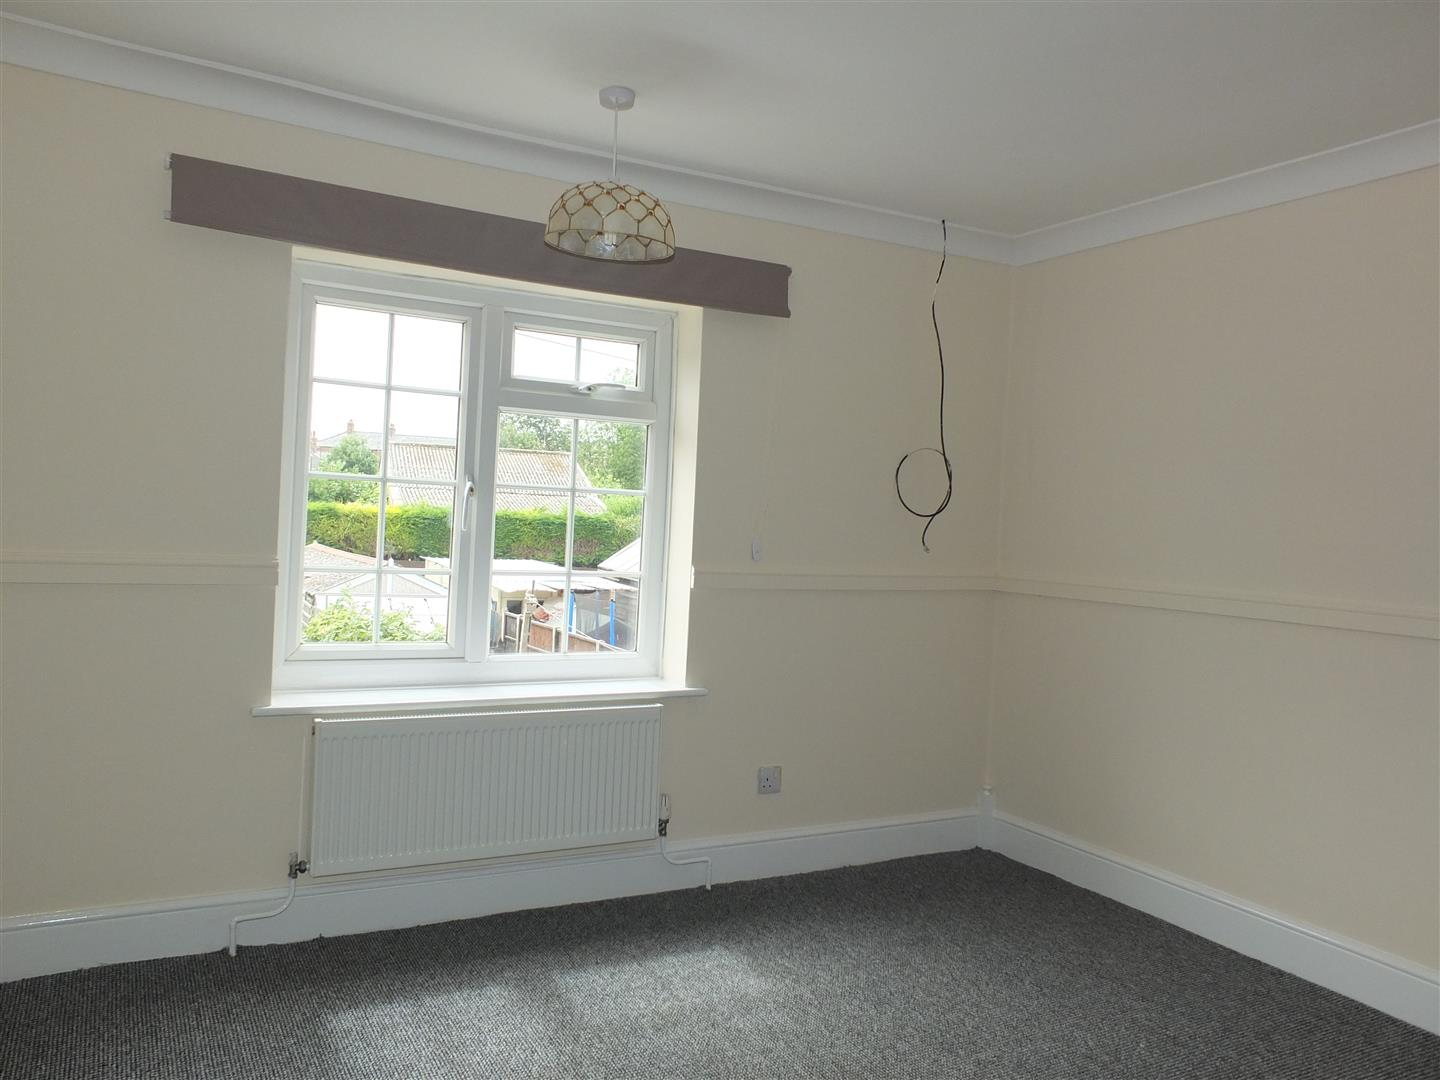 2 bed house to rent in Long Sutton Spalding, PE12 9DH  - Property Image 9